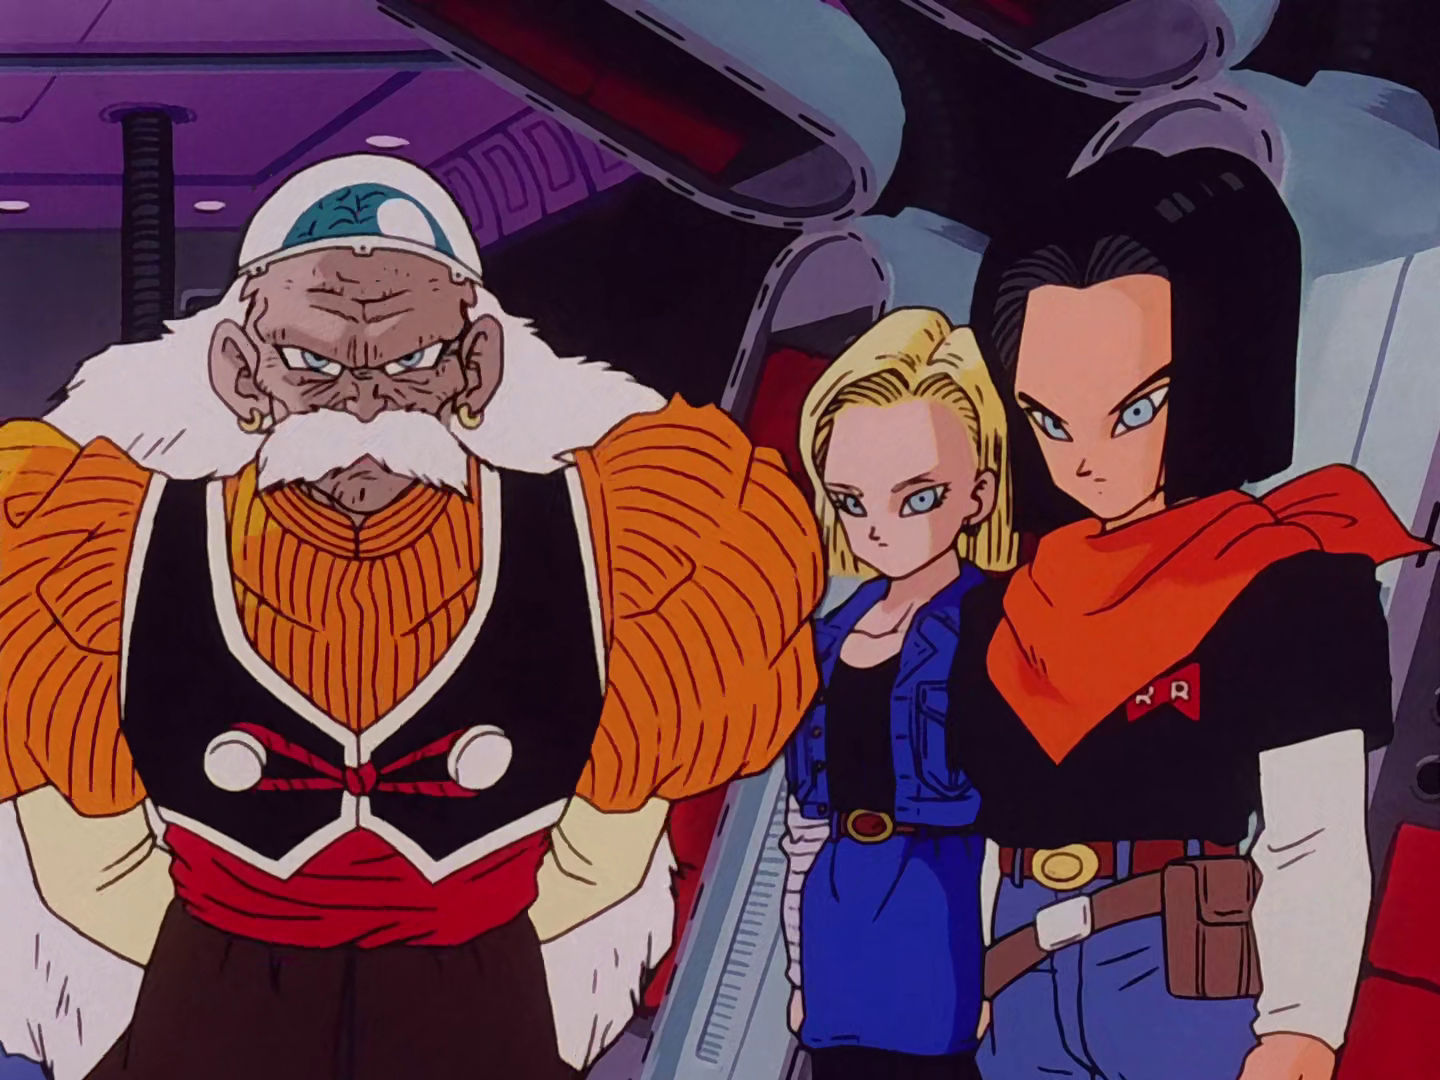 http://images.wikia.com/dragonball/images/2/29/Dr.GeroAndroid17and18NV ...